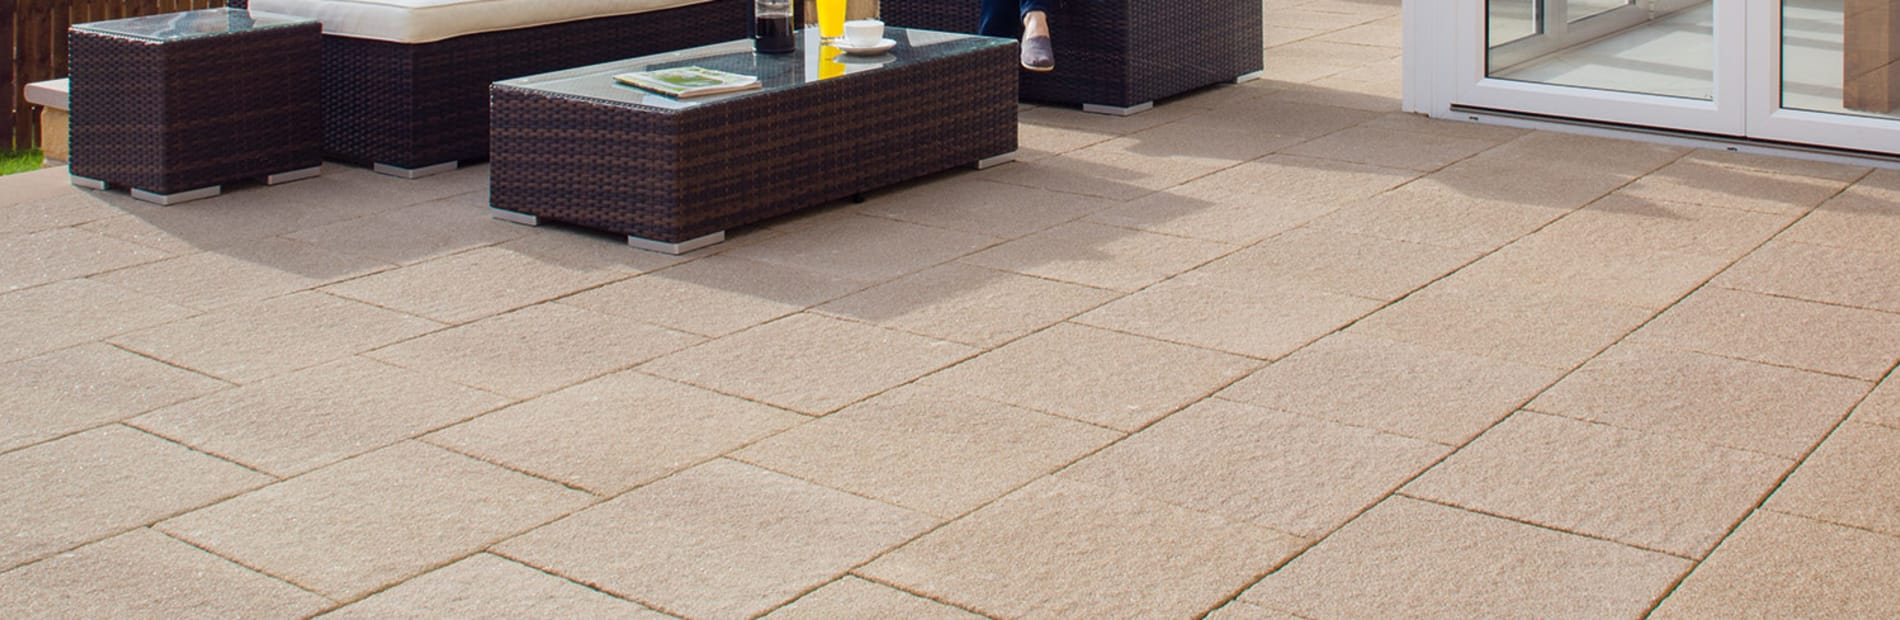 Organa Paving® hero image